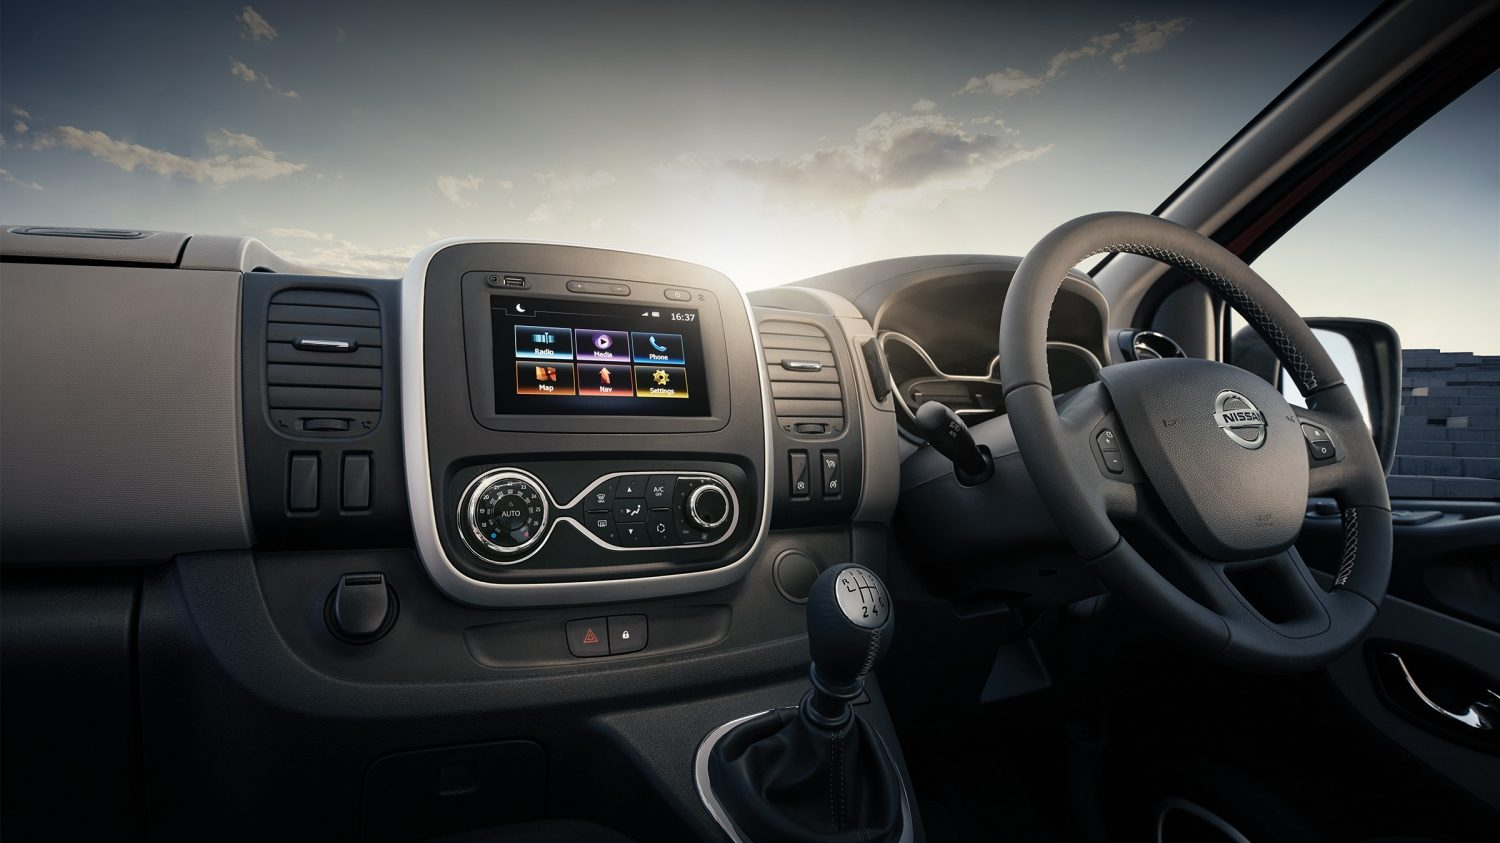 NAVIGATION & INFOTAINMENT SYSTEMS